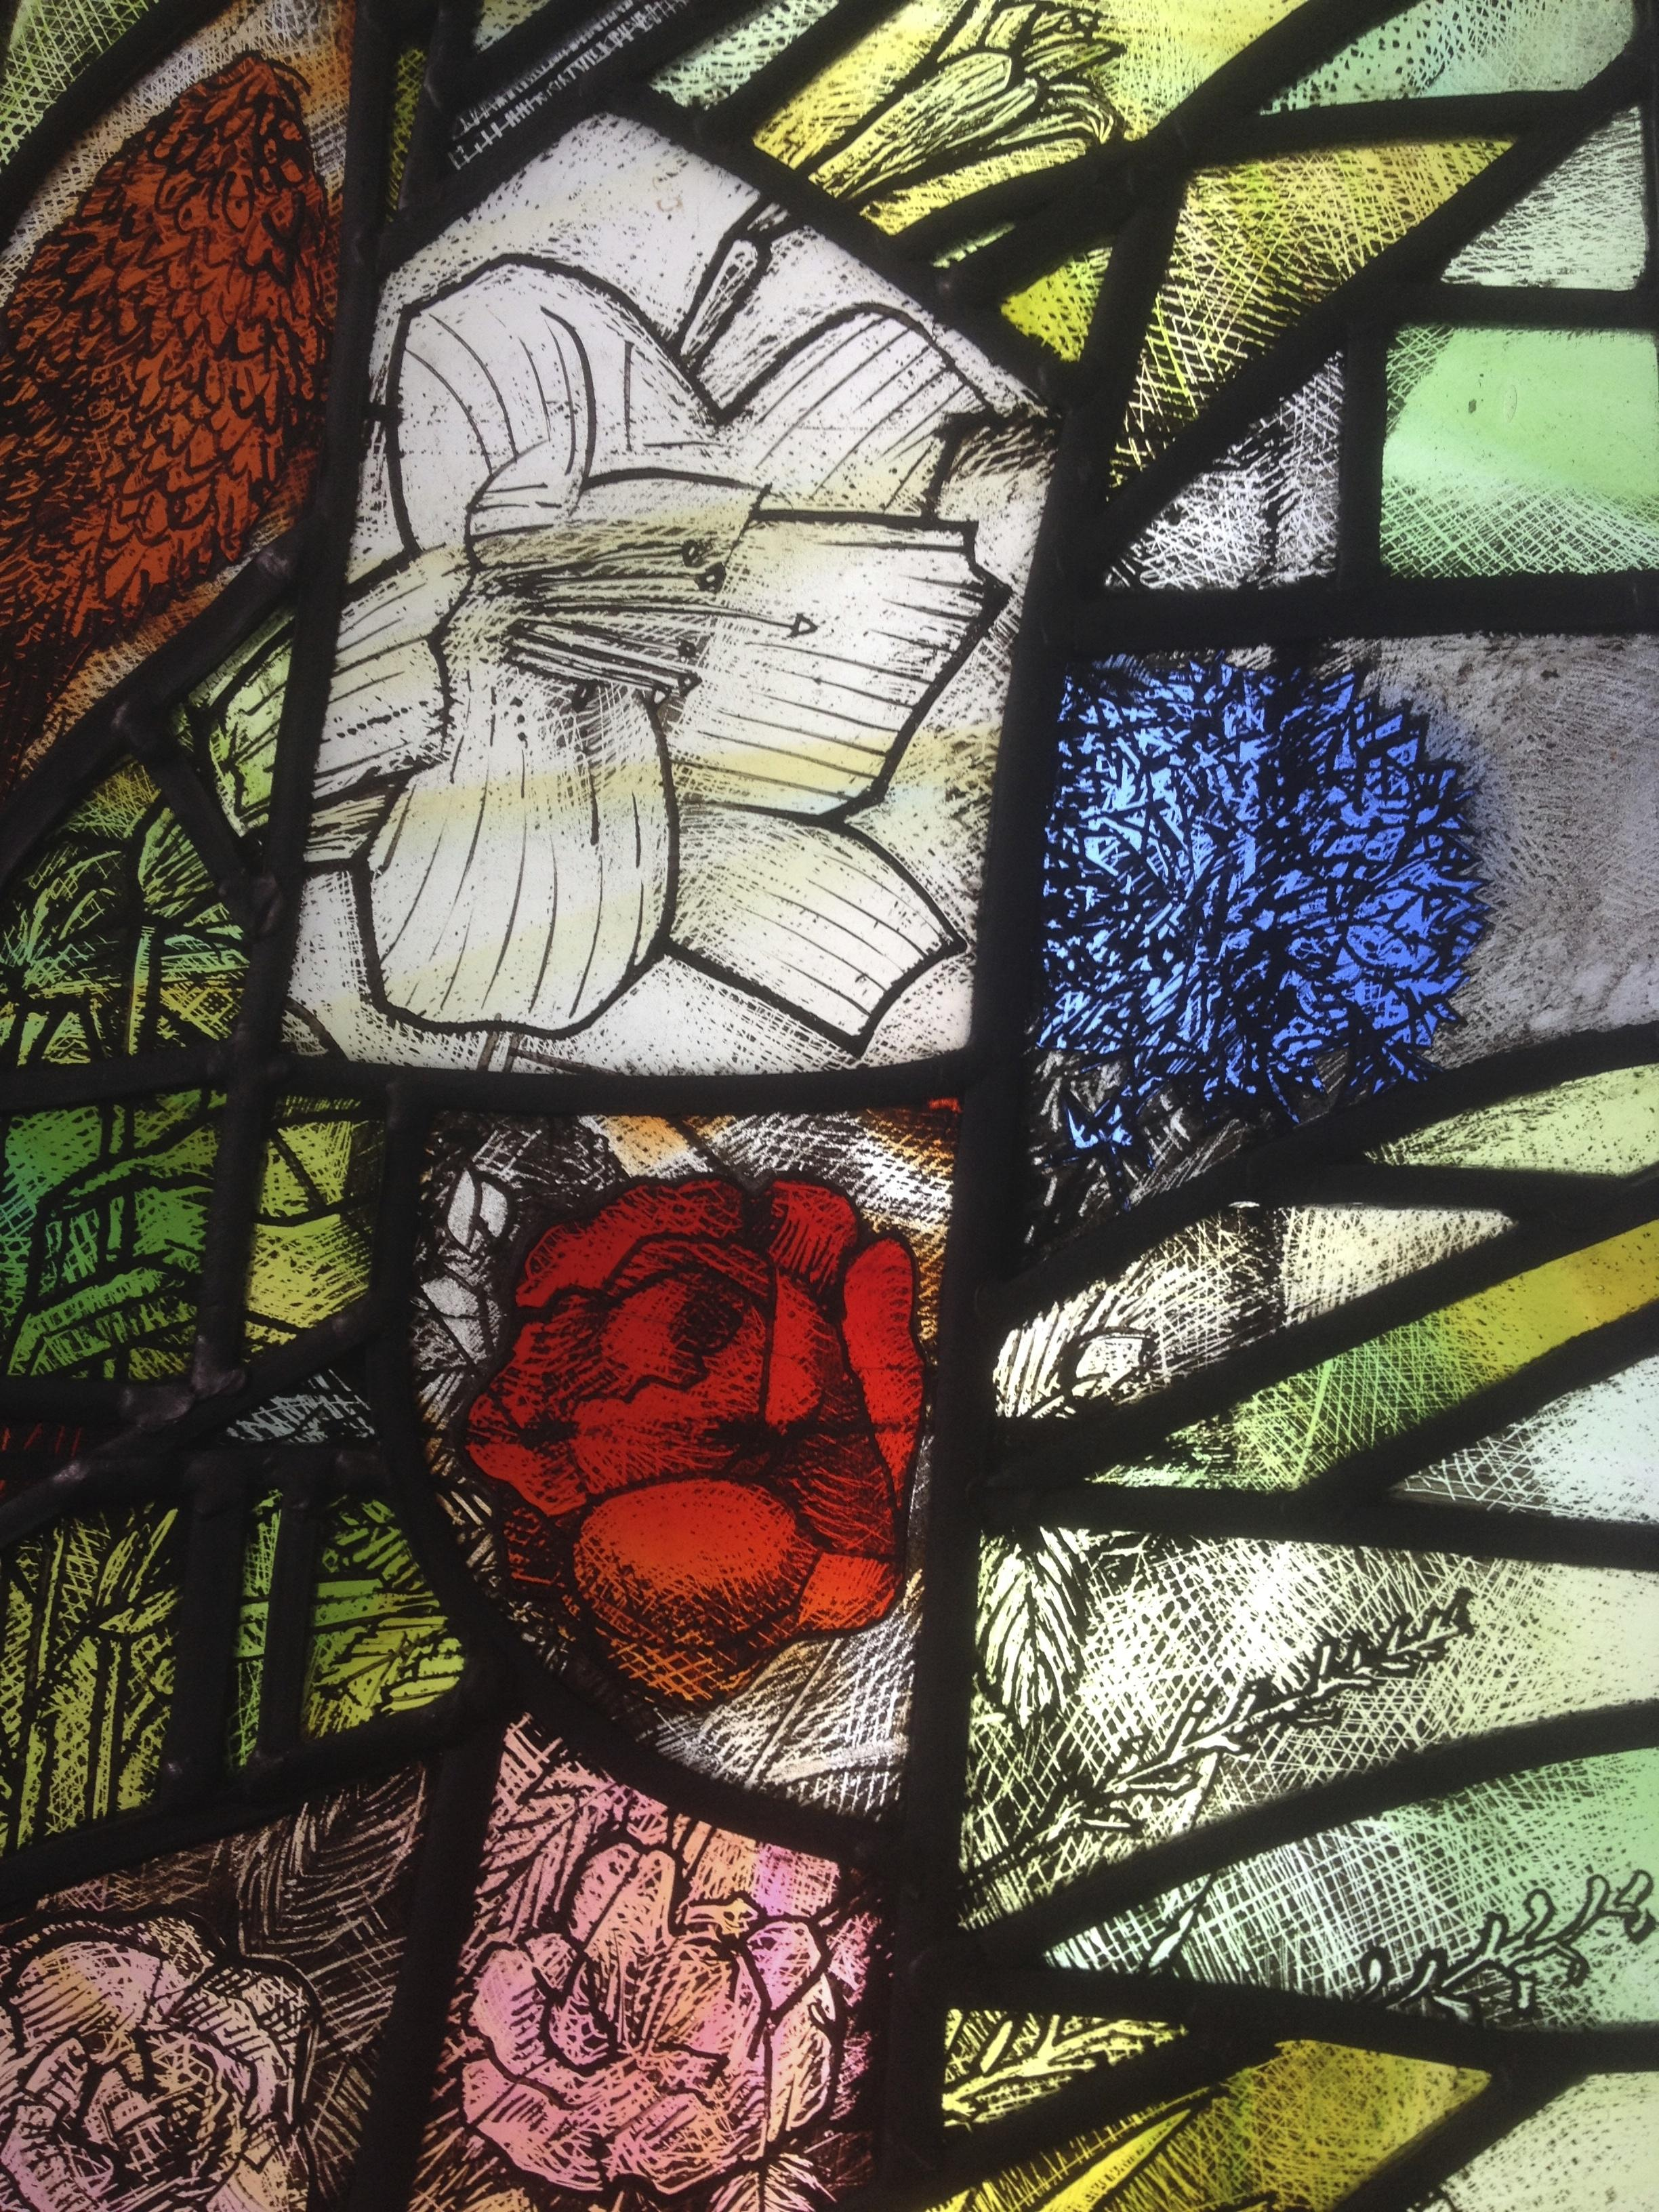 Painted and Stained Glass Assemblage